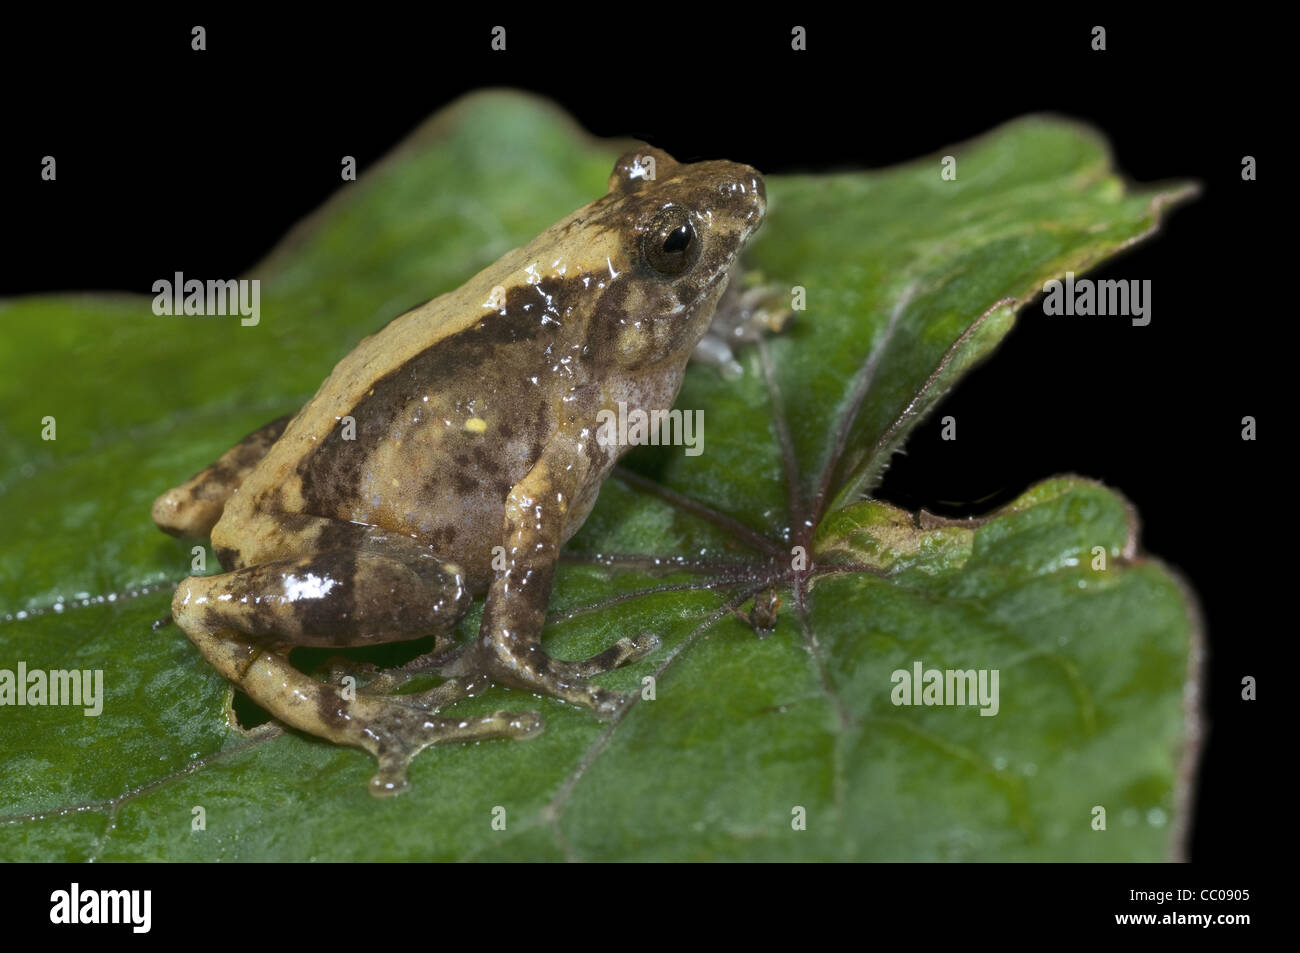 Philautus jerdonii a bush frog from northeast India - Stock Image